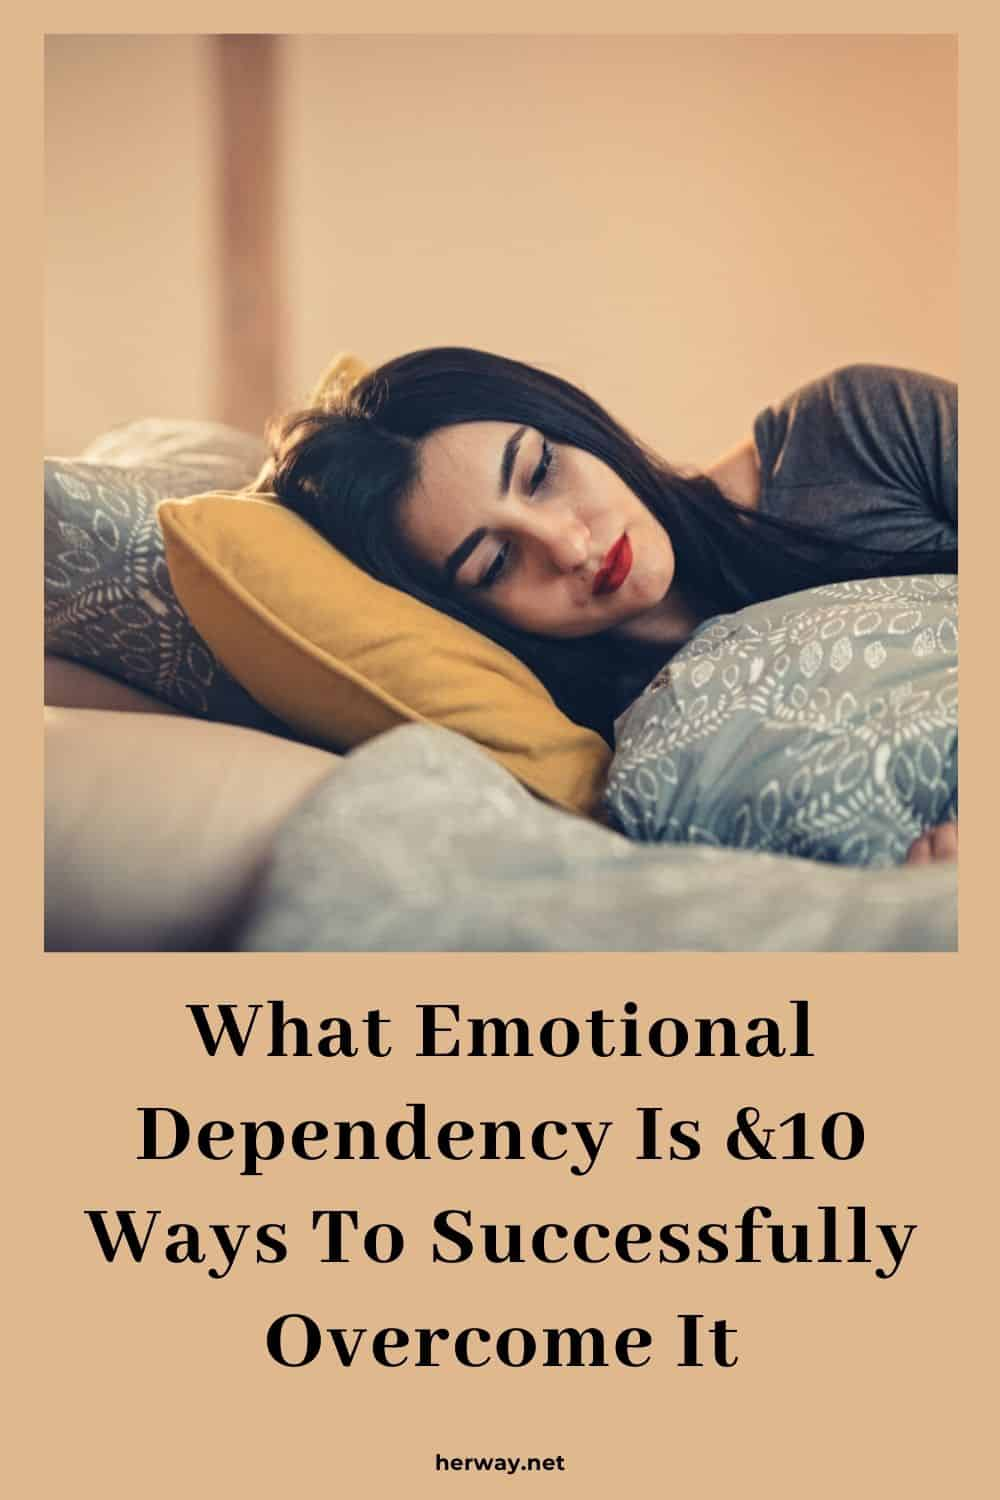 What Emotional Dependency Is &10 Ways To Successfully Overcome It